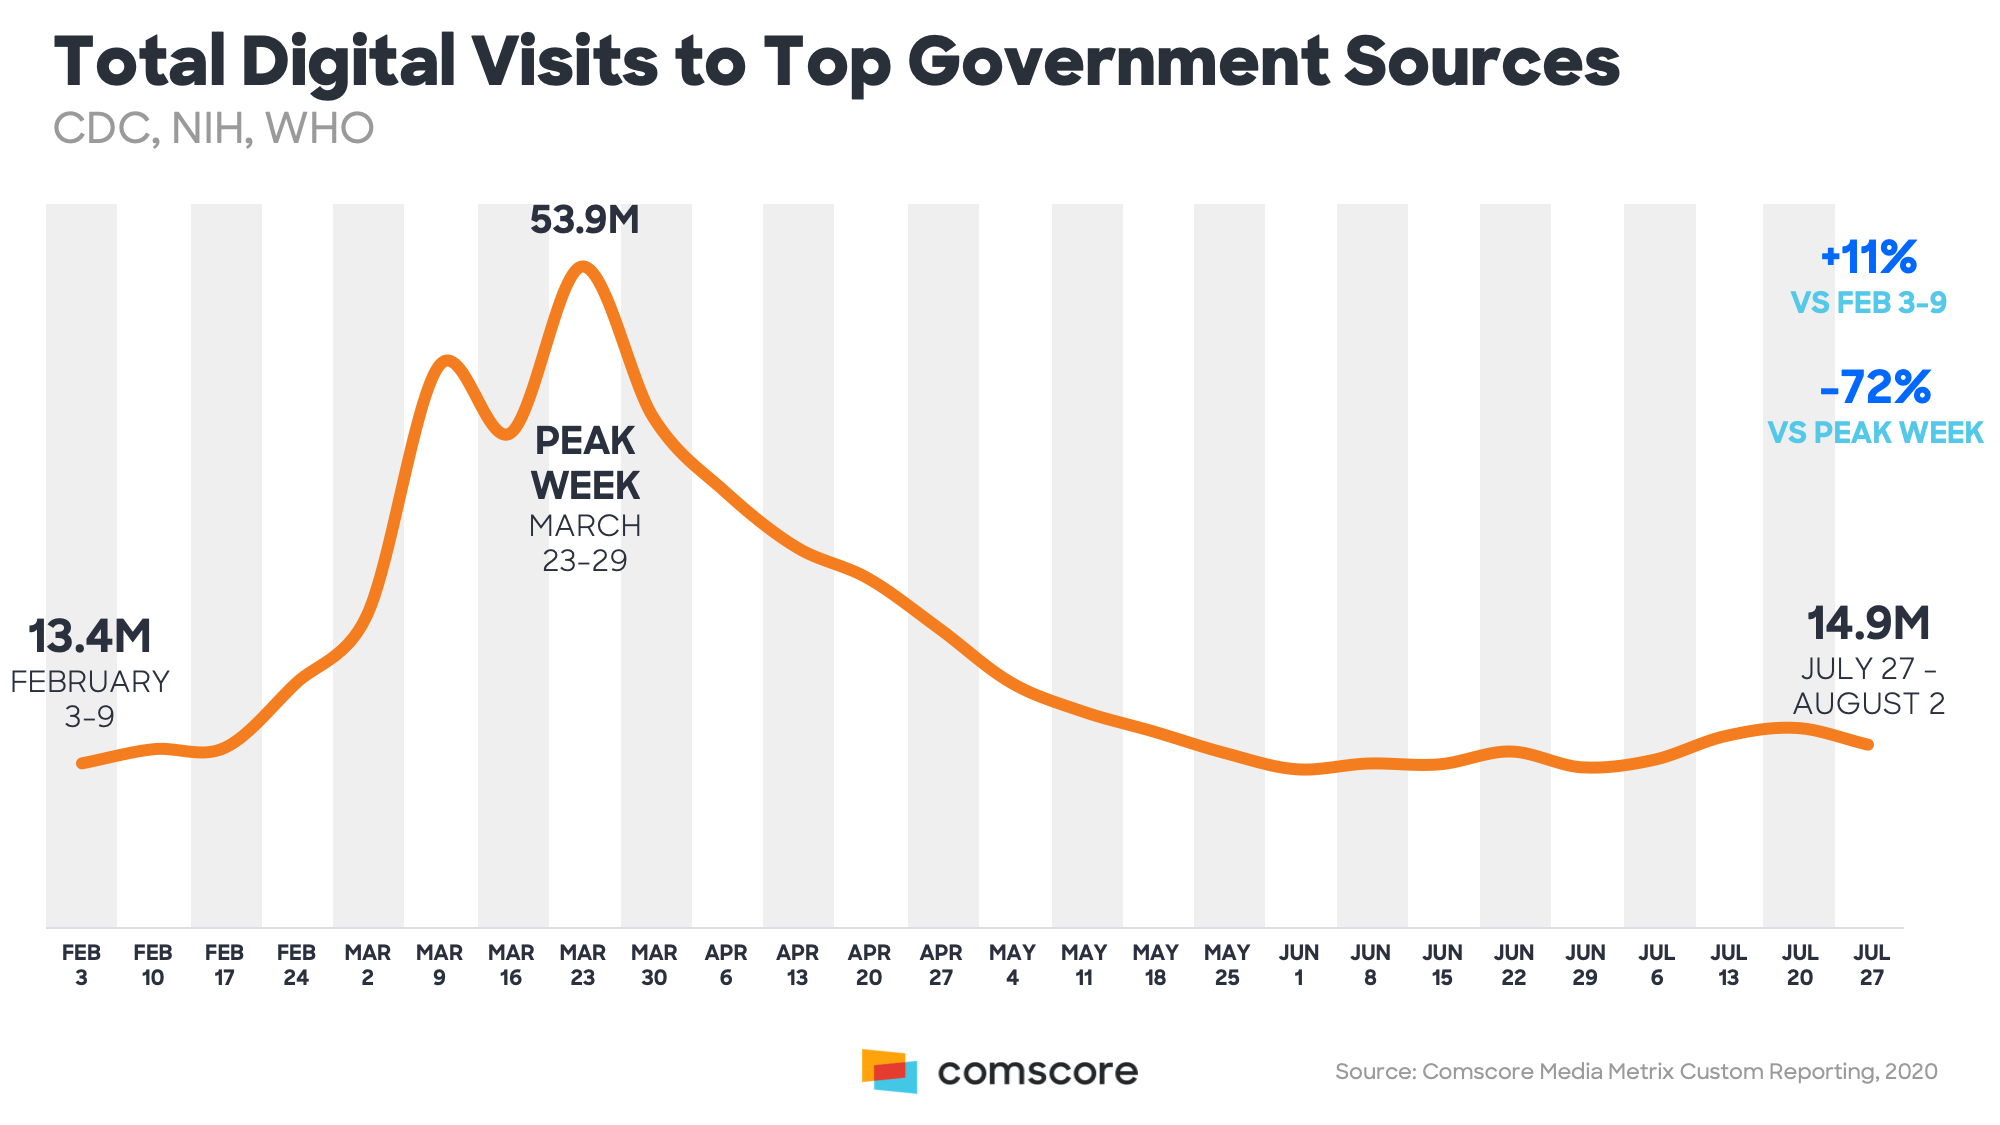 Top Digital Visits to Top Government Sources